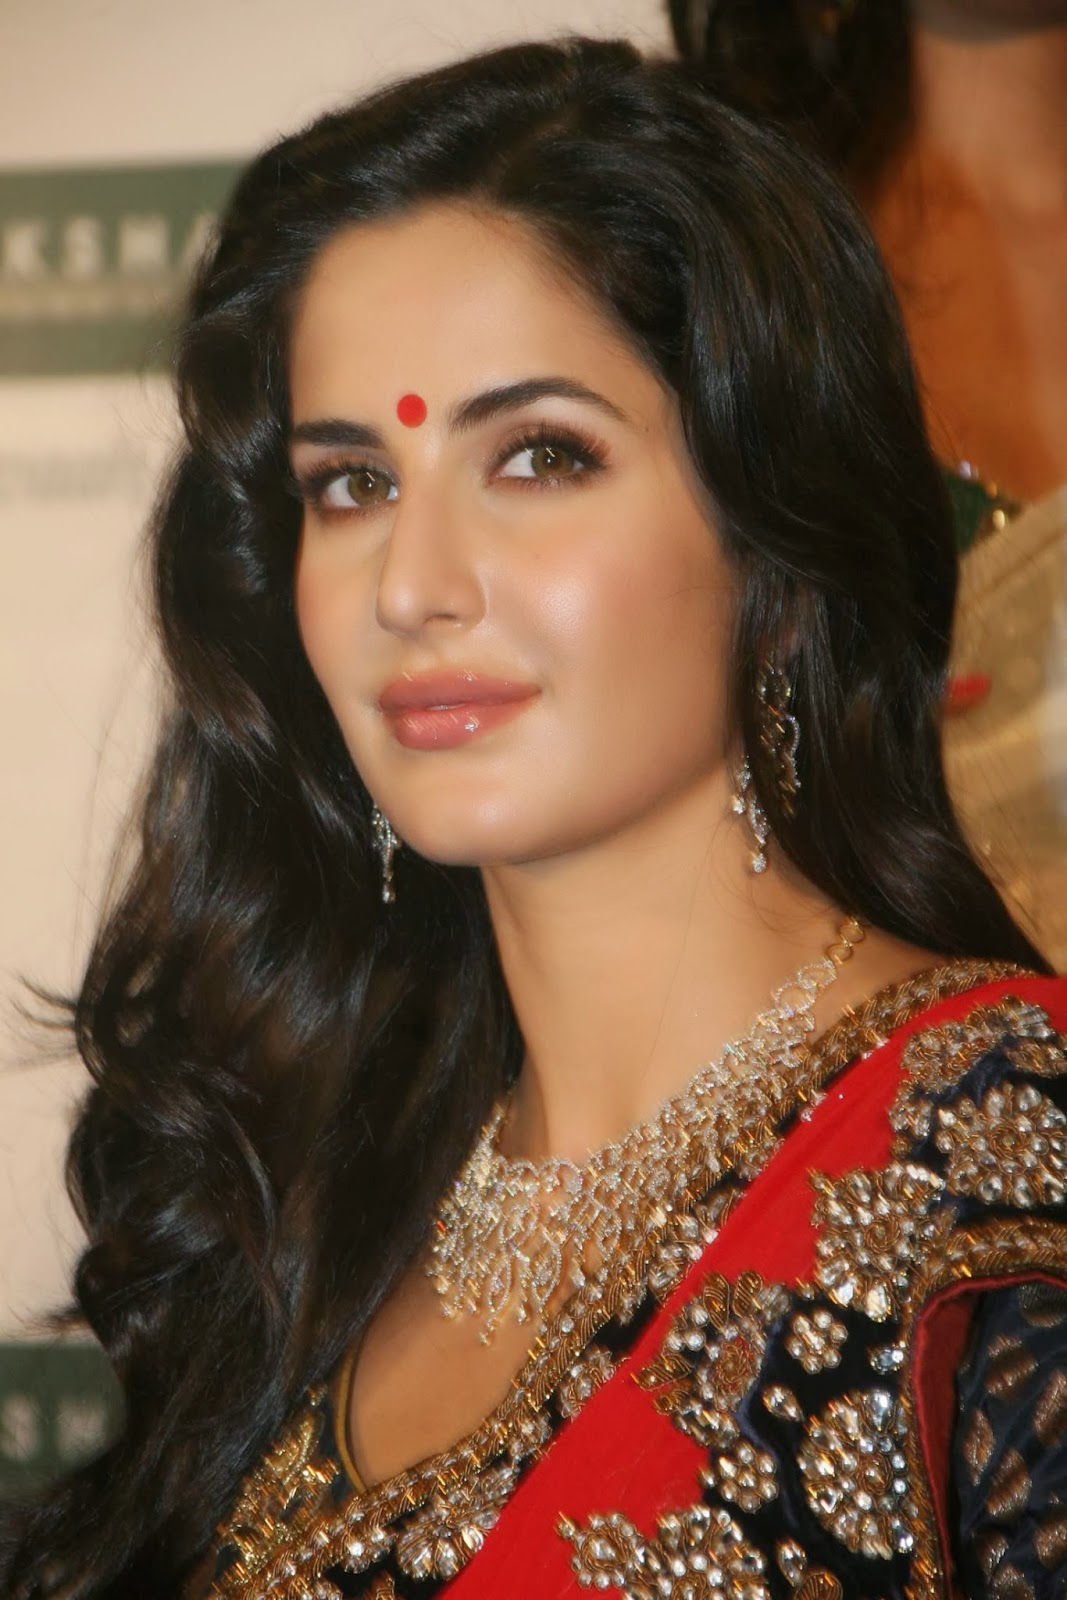 Hot Looking Face Photos Of Katrina Kaif In Red Saree